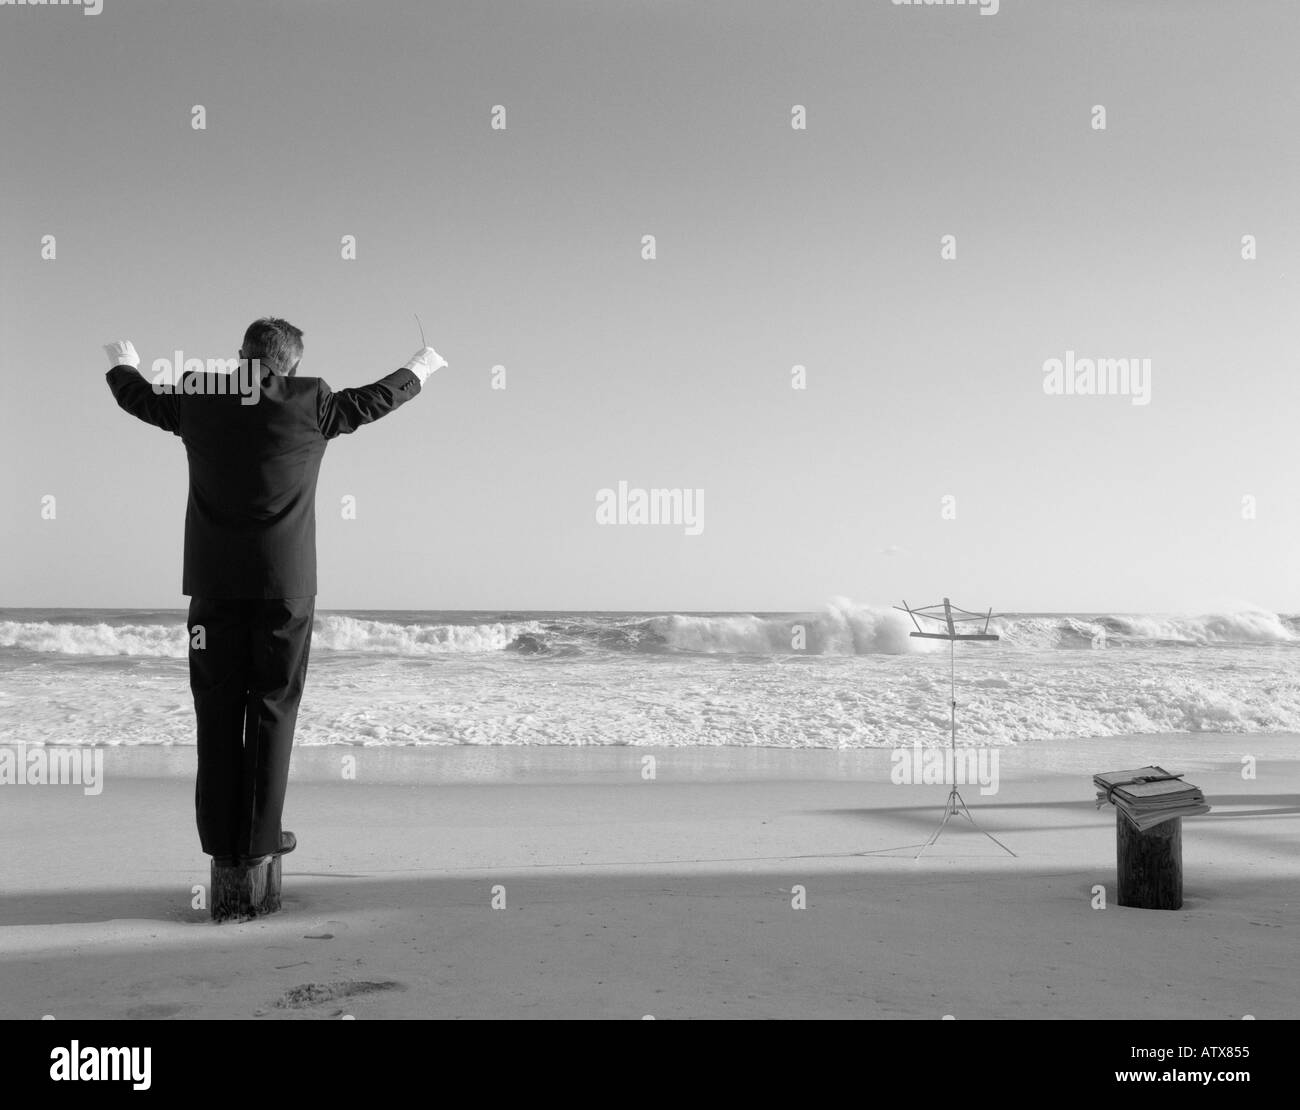 Man 40-44, 45-49, 50-54, 55-60, 60-65, 65-69, years old, conducting invisible orchestra at beach (rear view), Hamptons, New York, USA - Stock Image